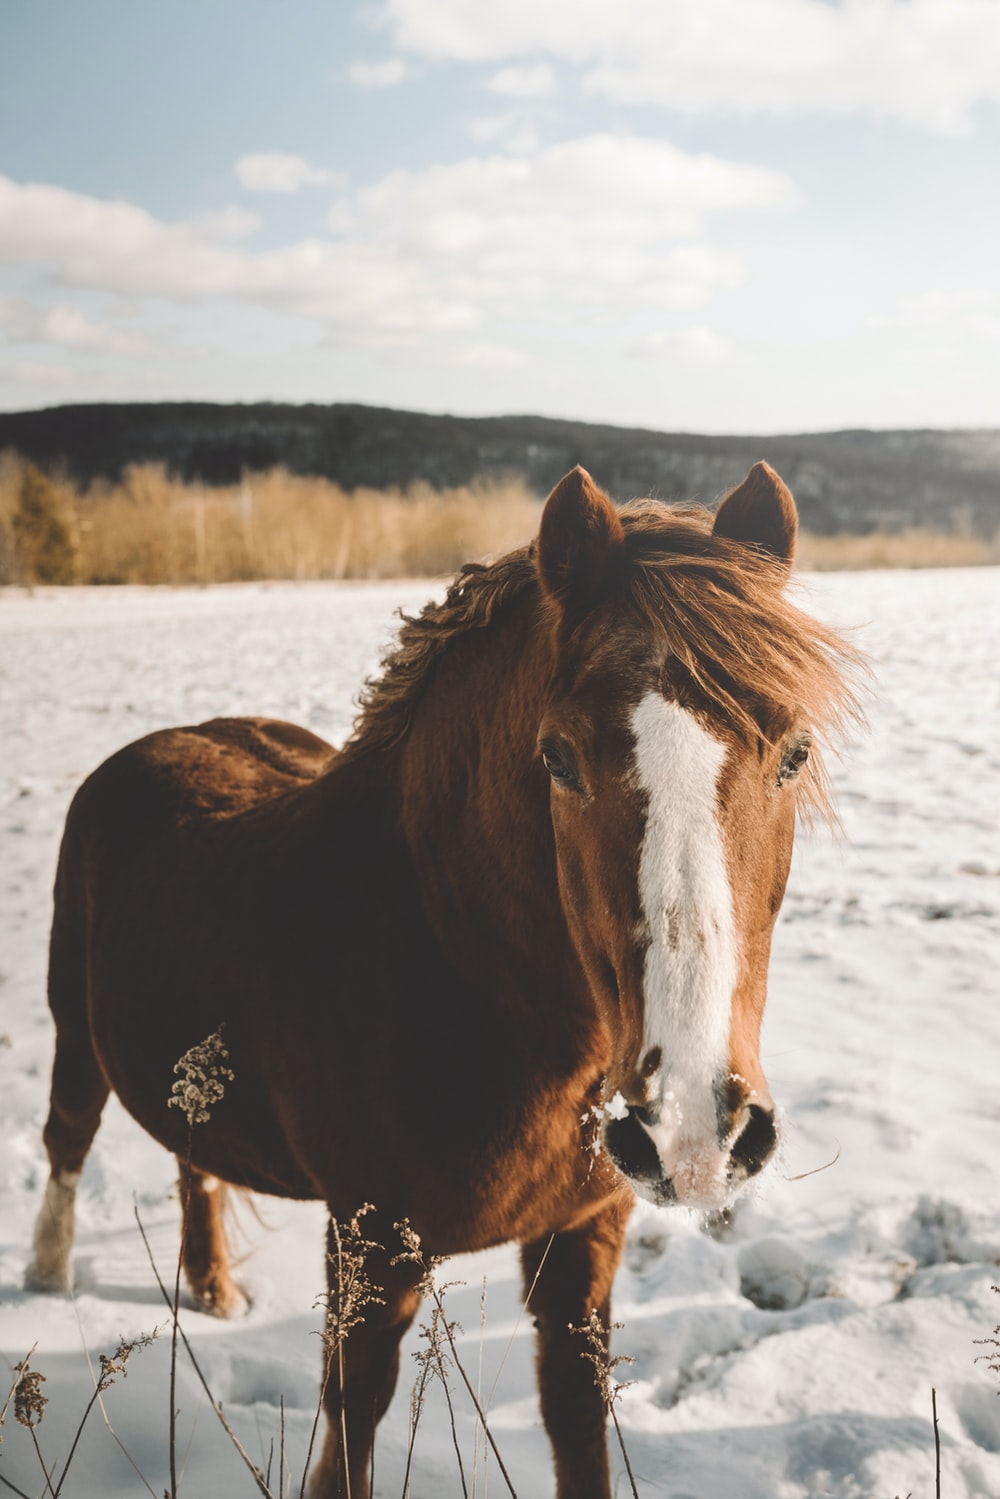 standing brown and white horse on snow during daytime